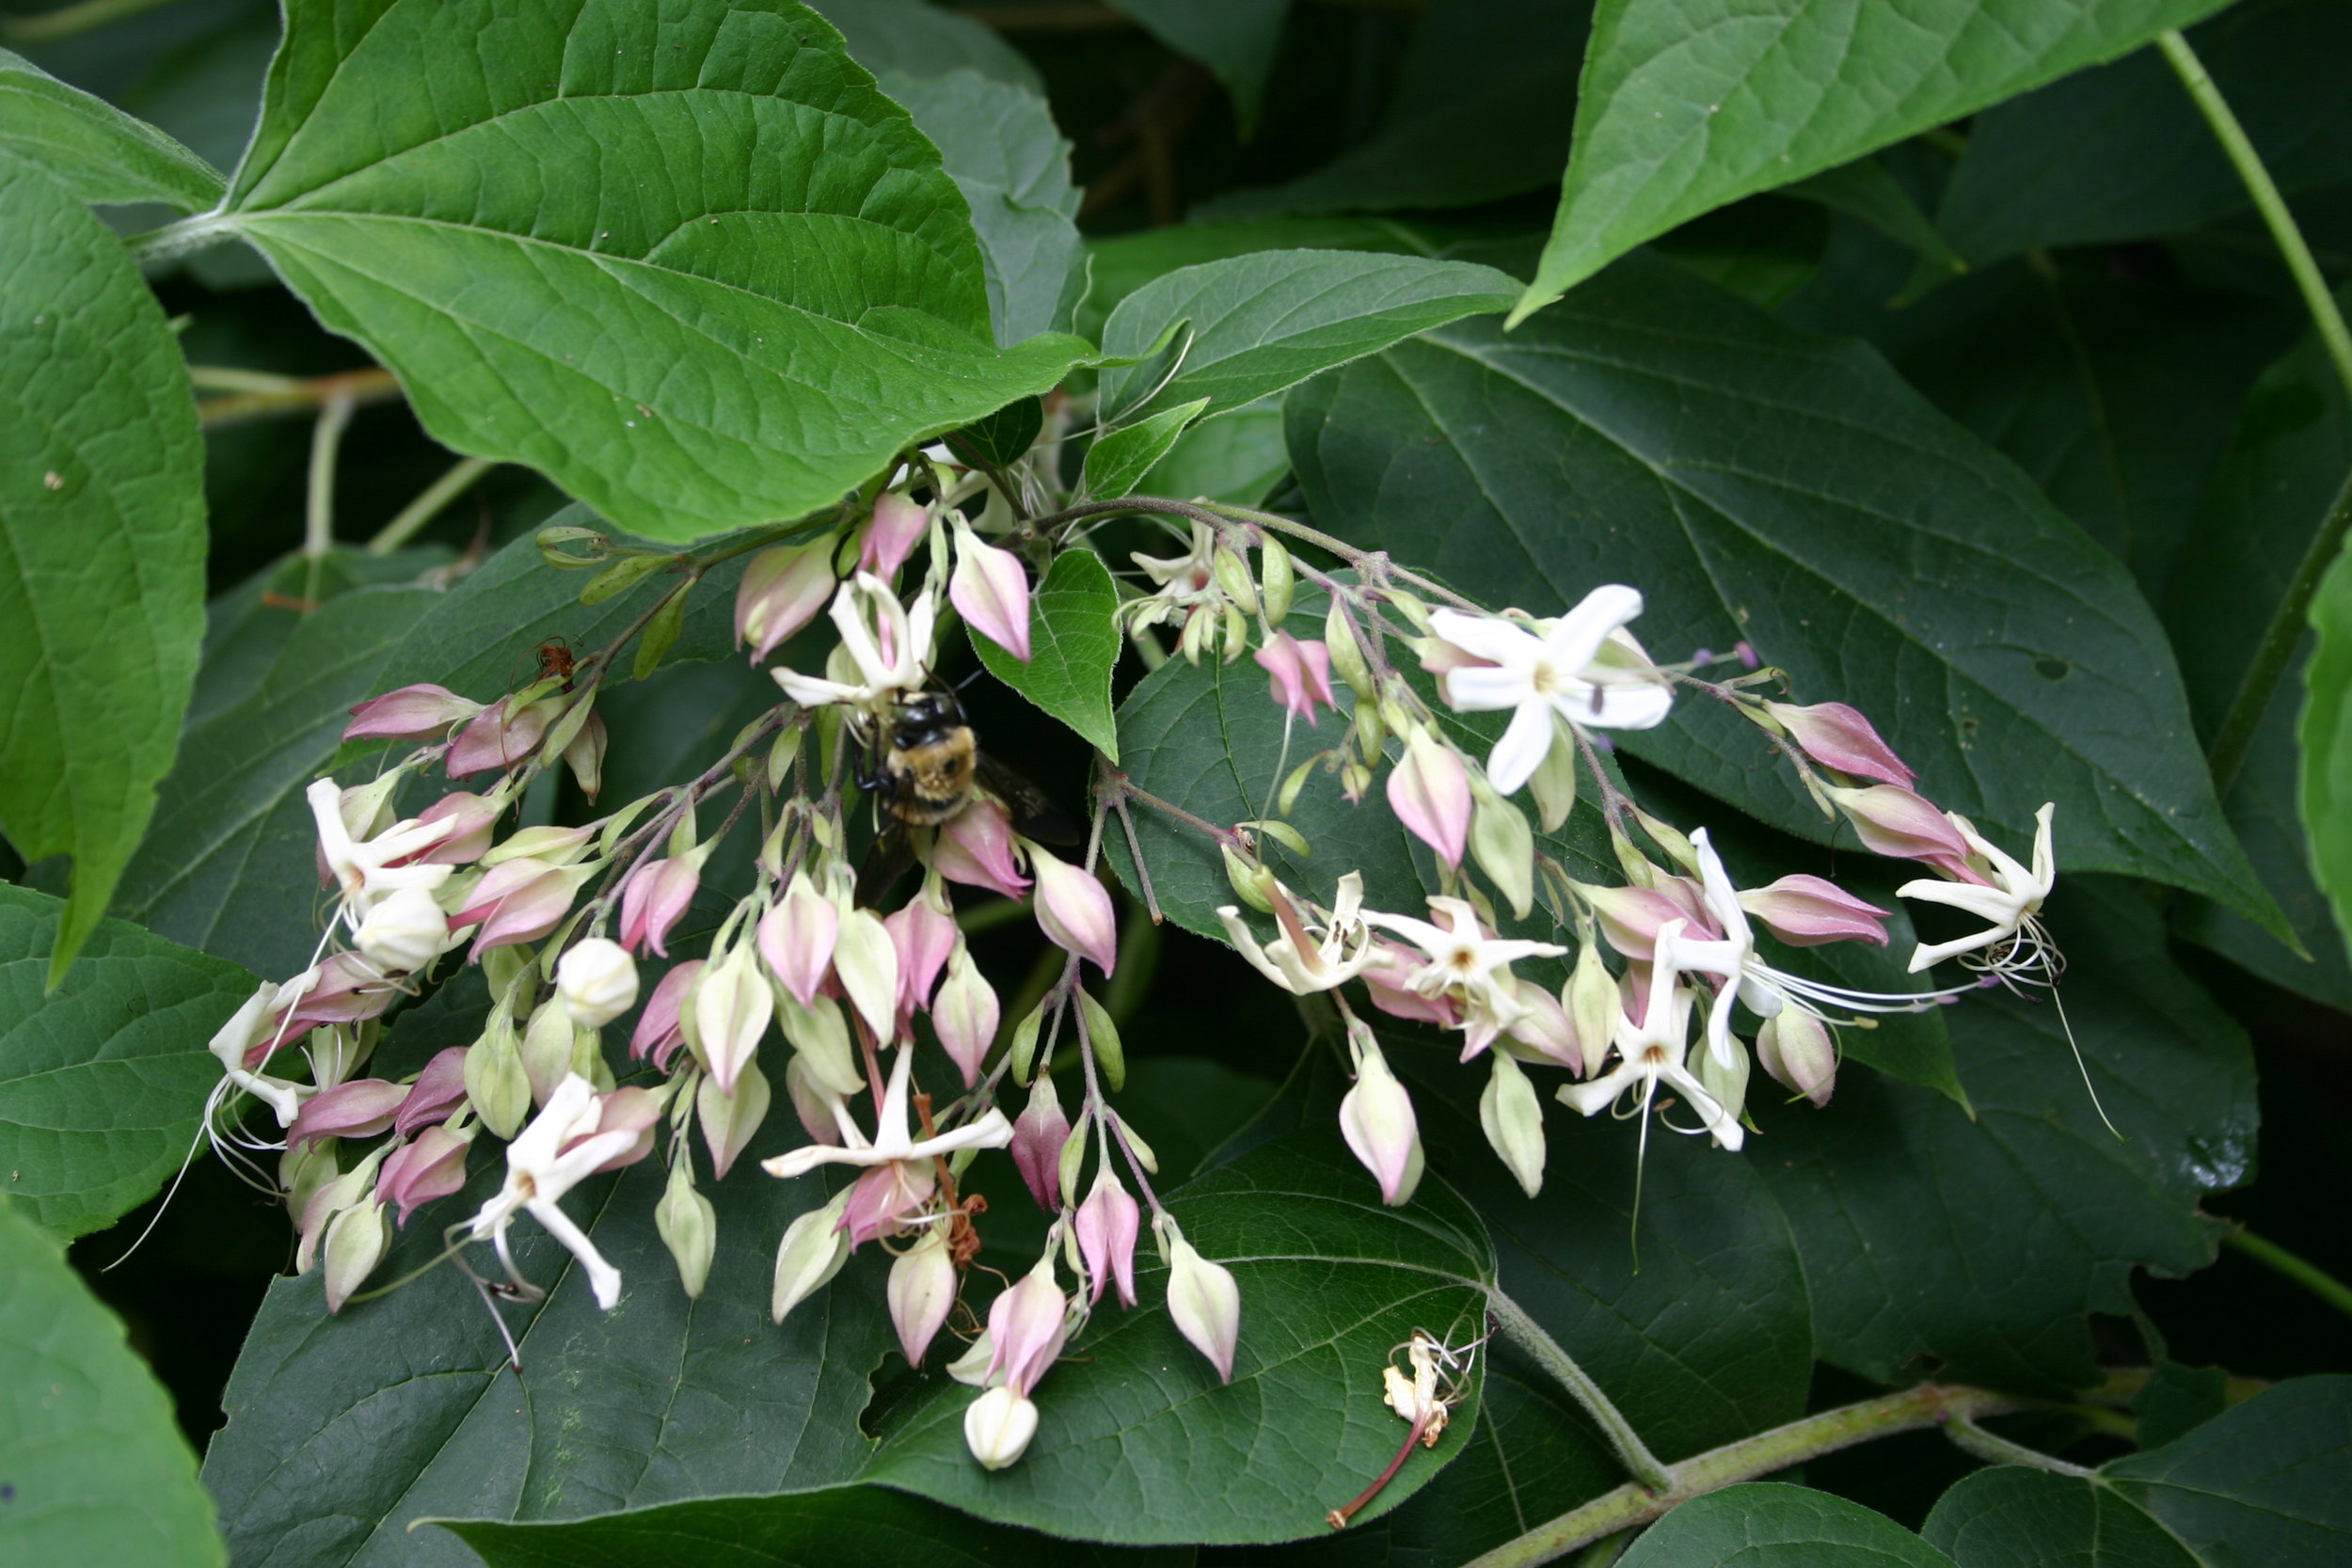 Clerodendrum bloom.jpg